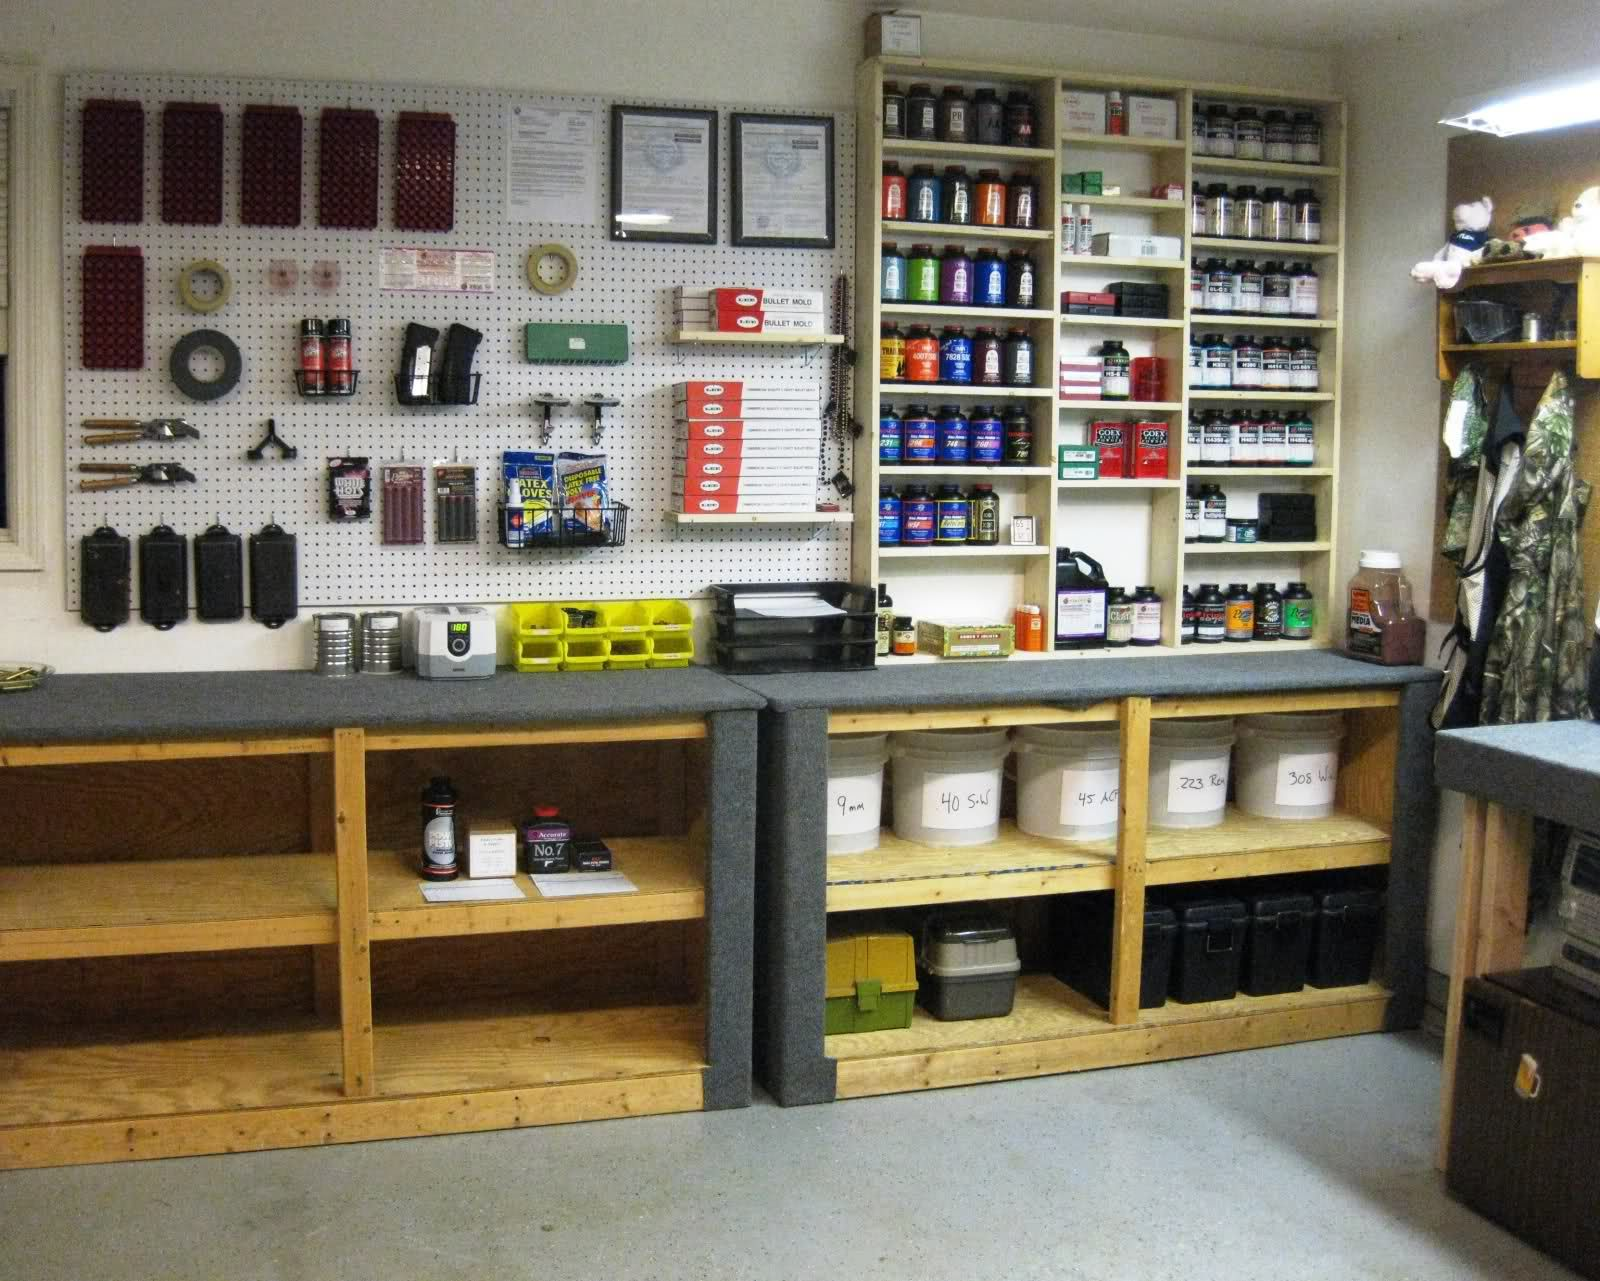 reloading room pics page 2 man cave ideas pinterest just spent 10 hours cleaning and reorganizing my reloading room find this pin and more on man cave ideas